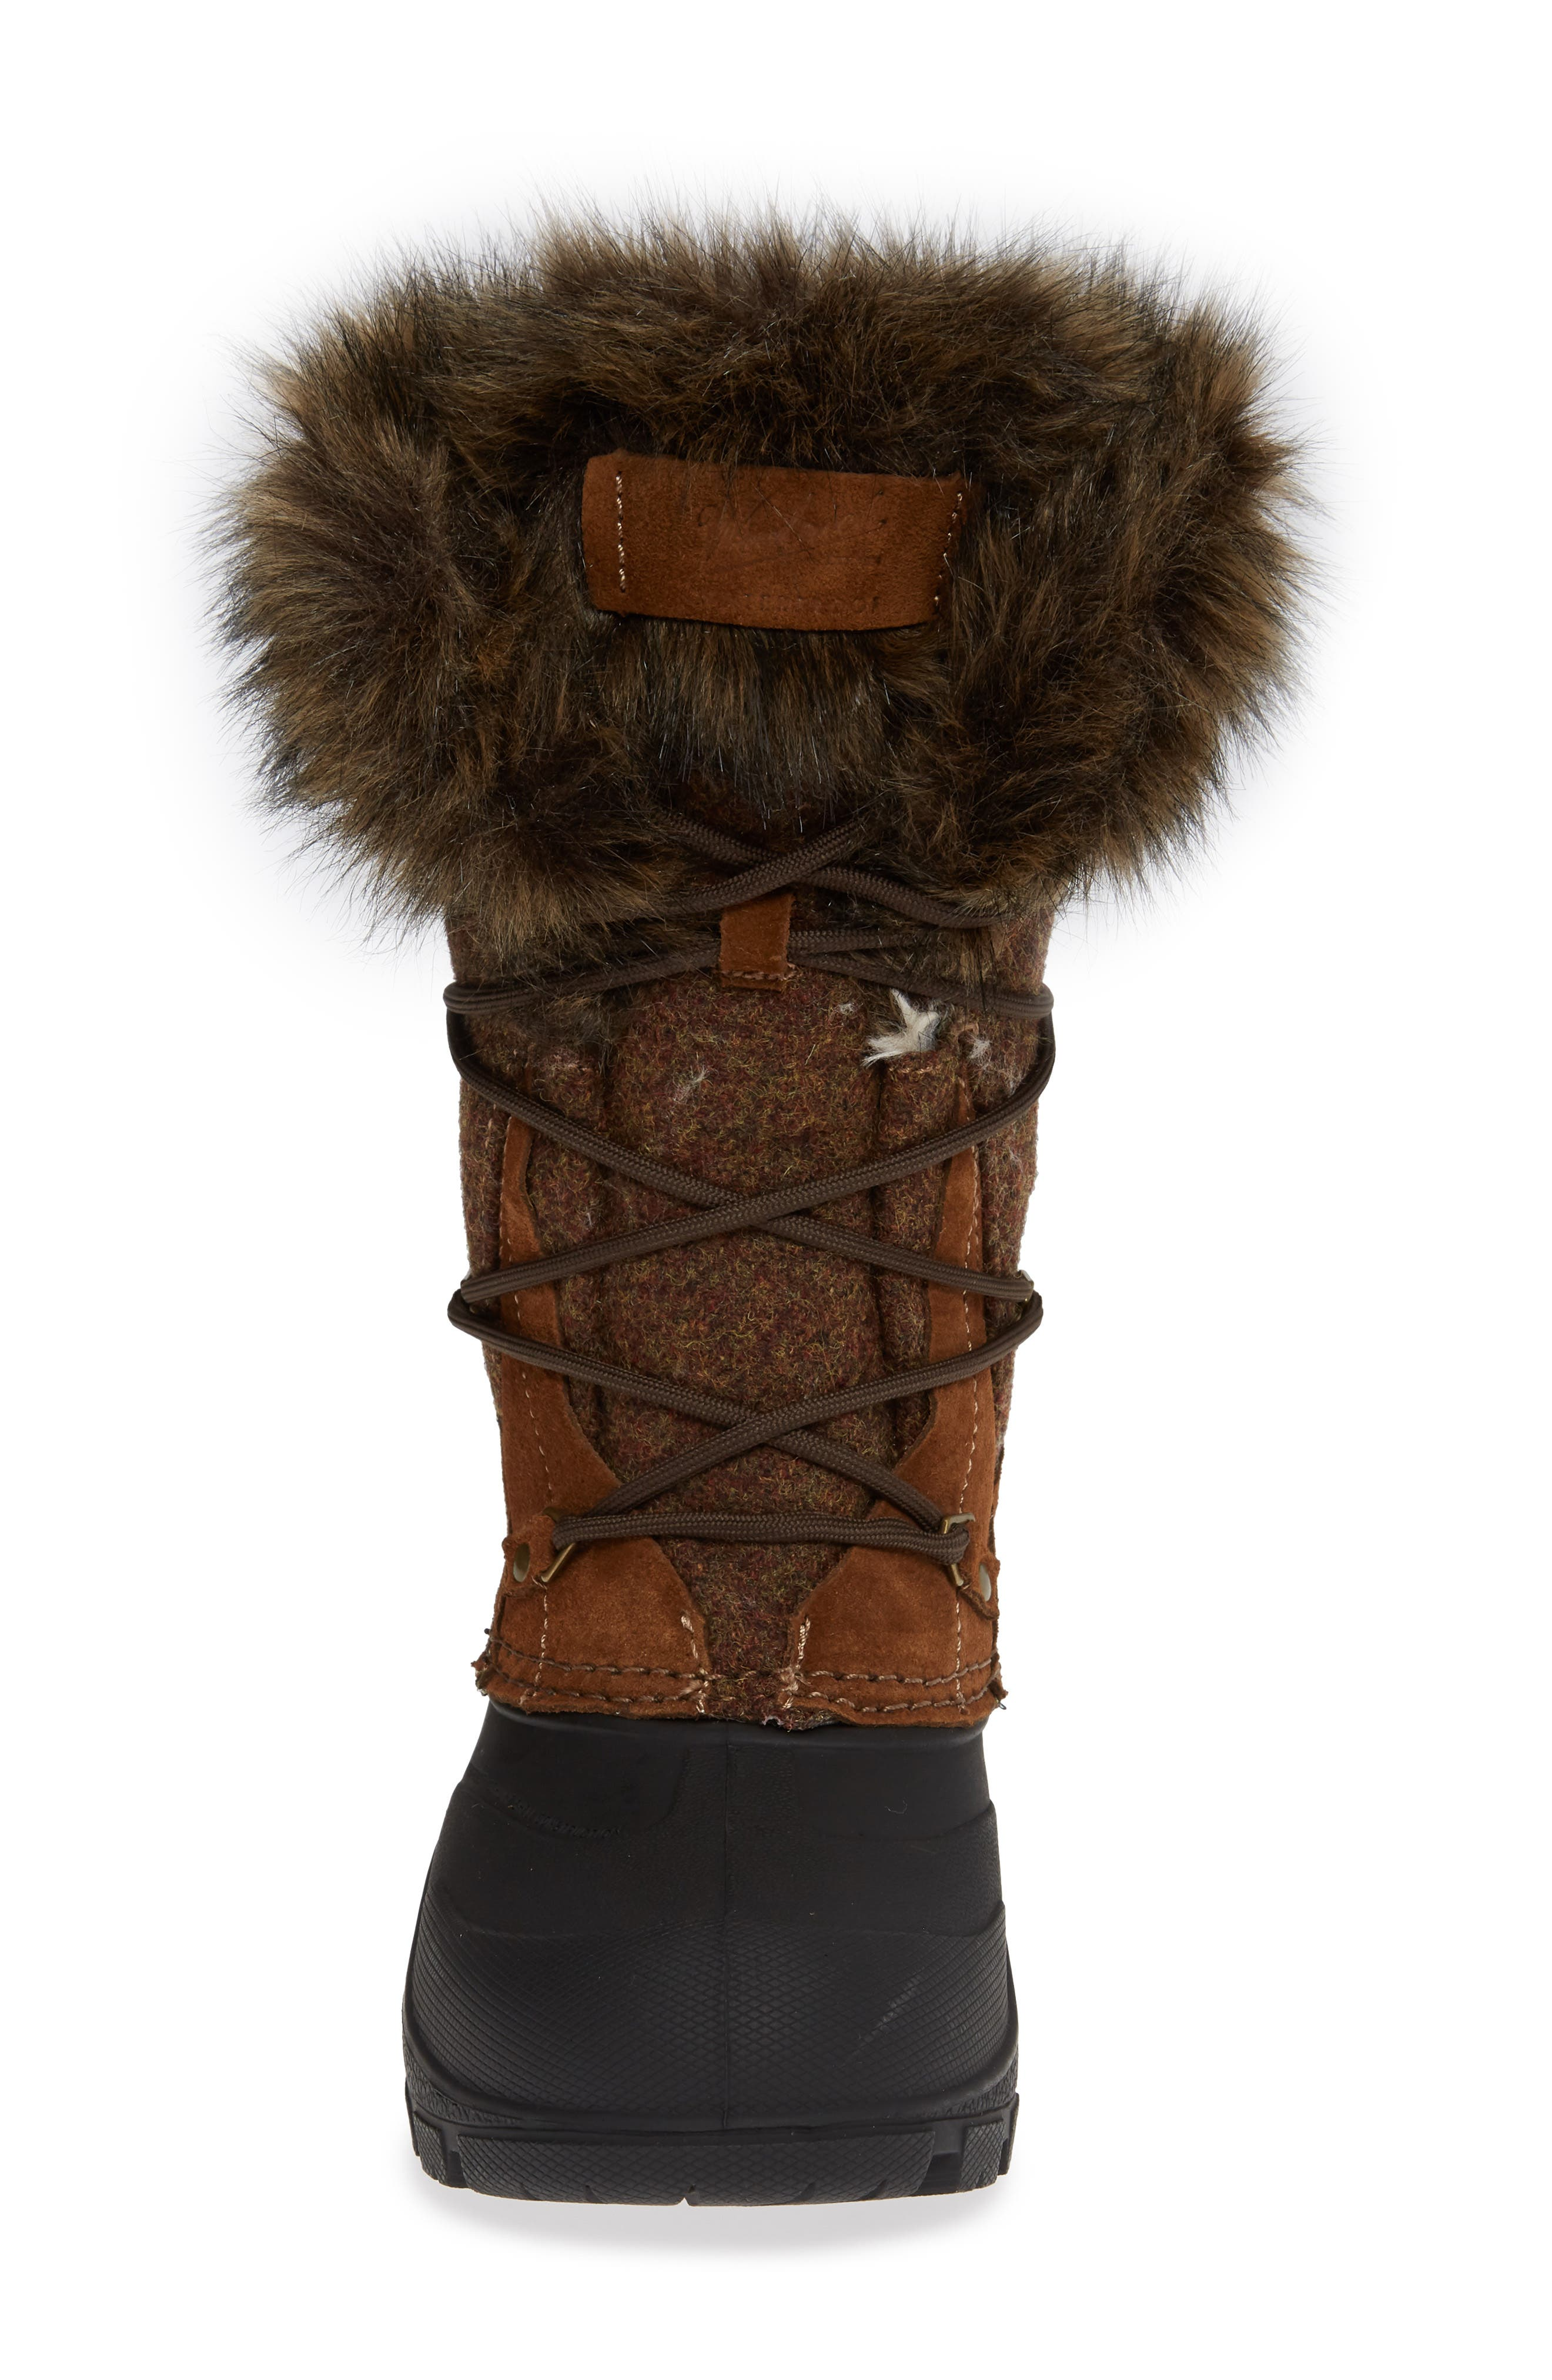 Ice Cougar Waterproof Knee High Winter Boot with Faux Fur Trim,                             Alternate thumbnail 4, color,                             DACHSHUND WOOL